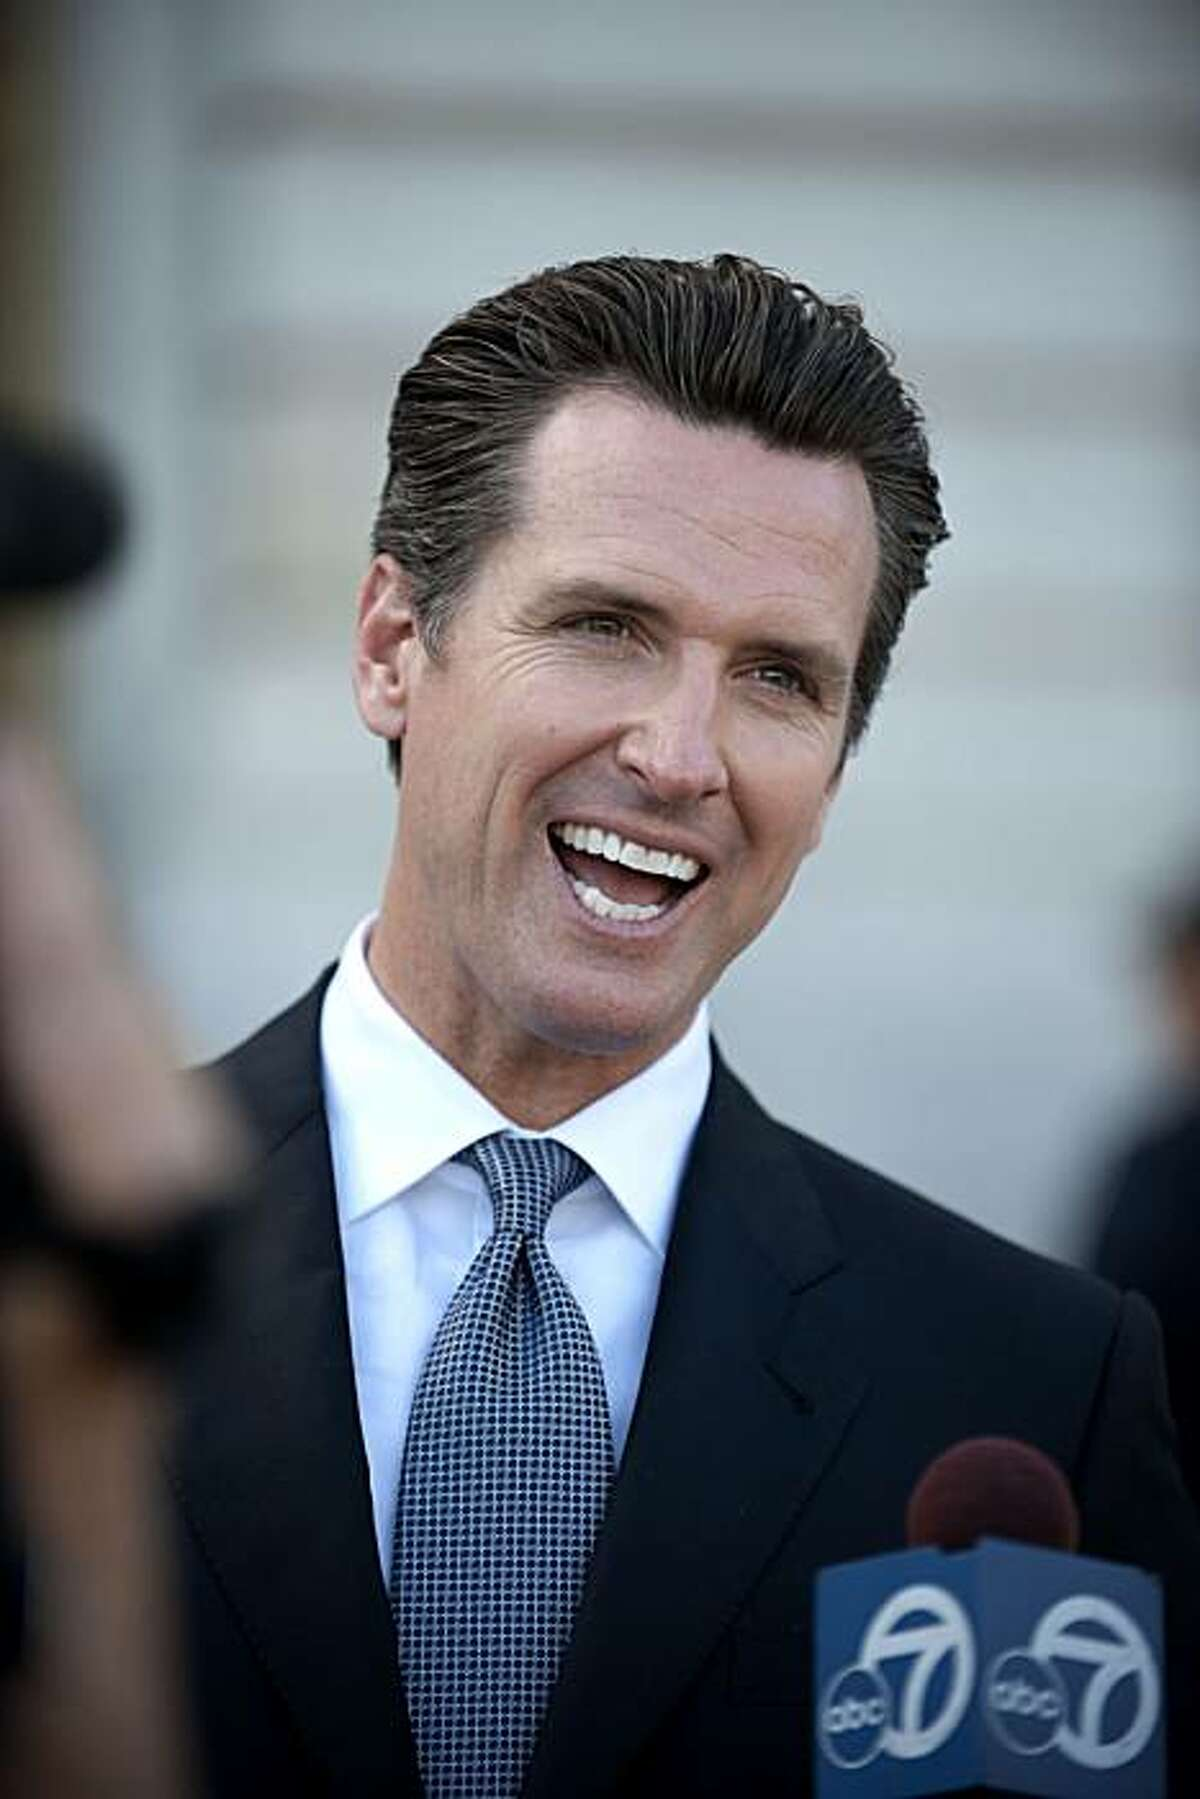 """Mayor Gavin Newsom shares his disappointment with media but is encouraged that the decision will be made in December rather than be pushed into 2011. """"What do you say to a couple who has waited 30 years for this and already had their save the date cards mailed out. It's frustrating"""" said Newsom in reaction to the stay that was put on same sex marriages in San Francisco, Calif., on Wednesday, August 16, 2010."""